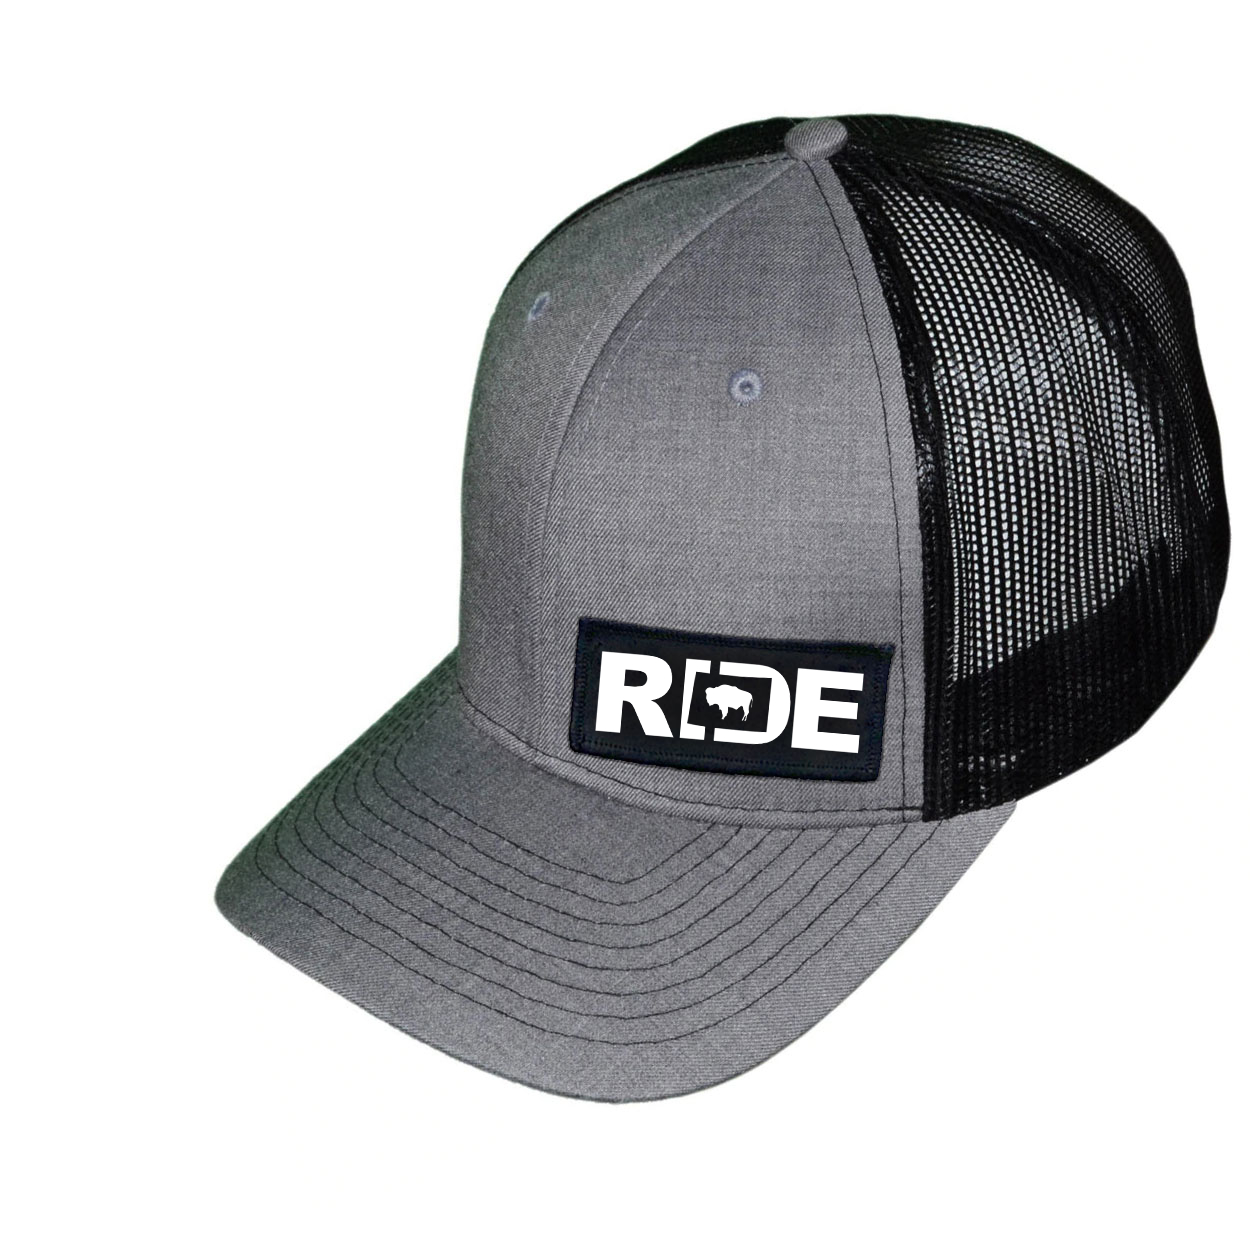 Ride Wyoming Night Out Woven Patch Snapback Trucker Hat Heather Gray/Black (White Logo)